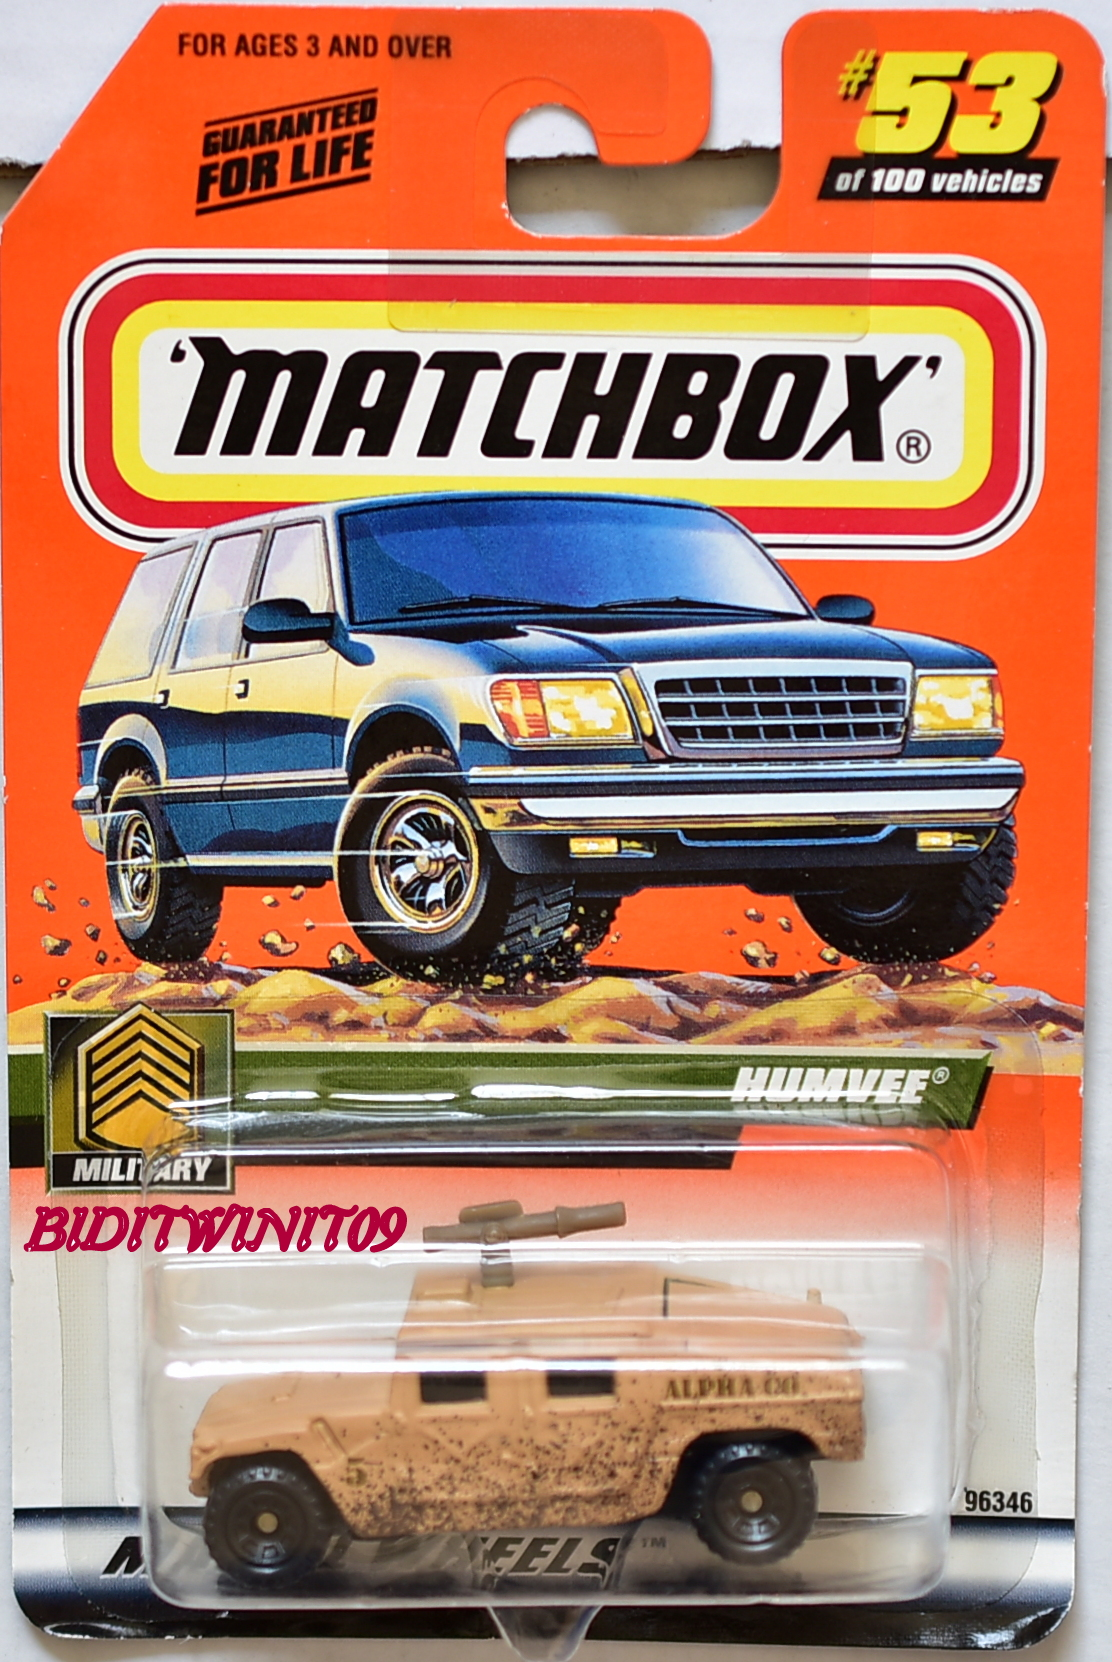 MATCHBOX 2000 MILITARY HUMVEE #53 E+